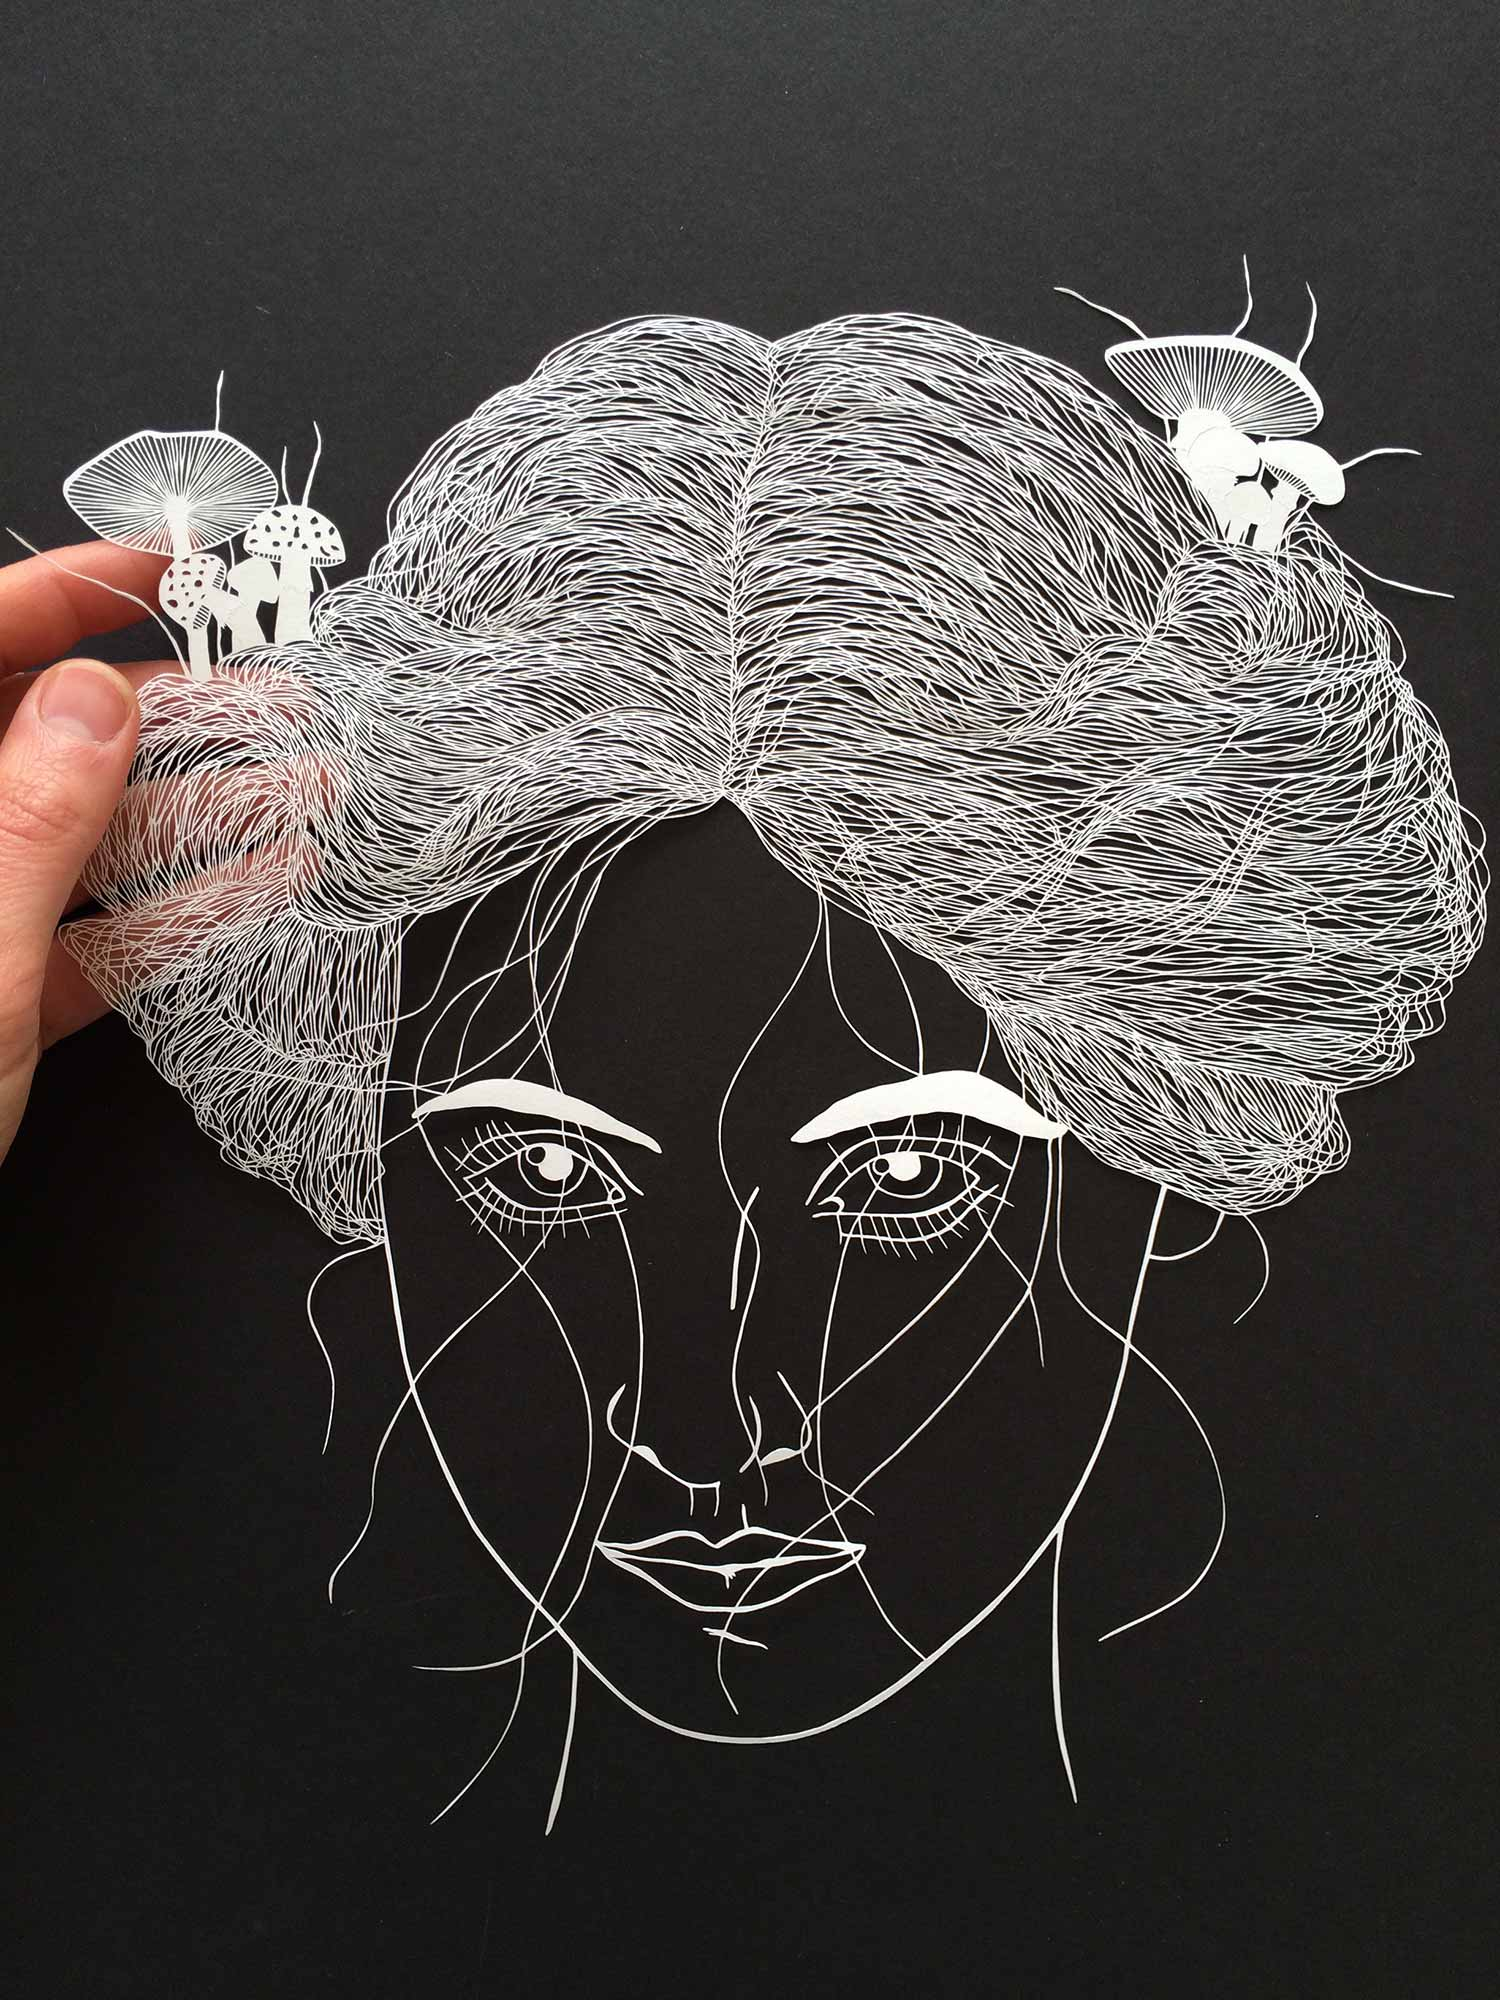 Cut paper by Maude White